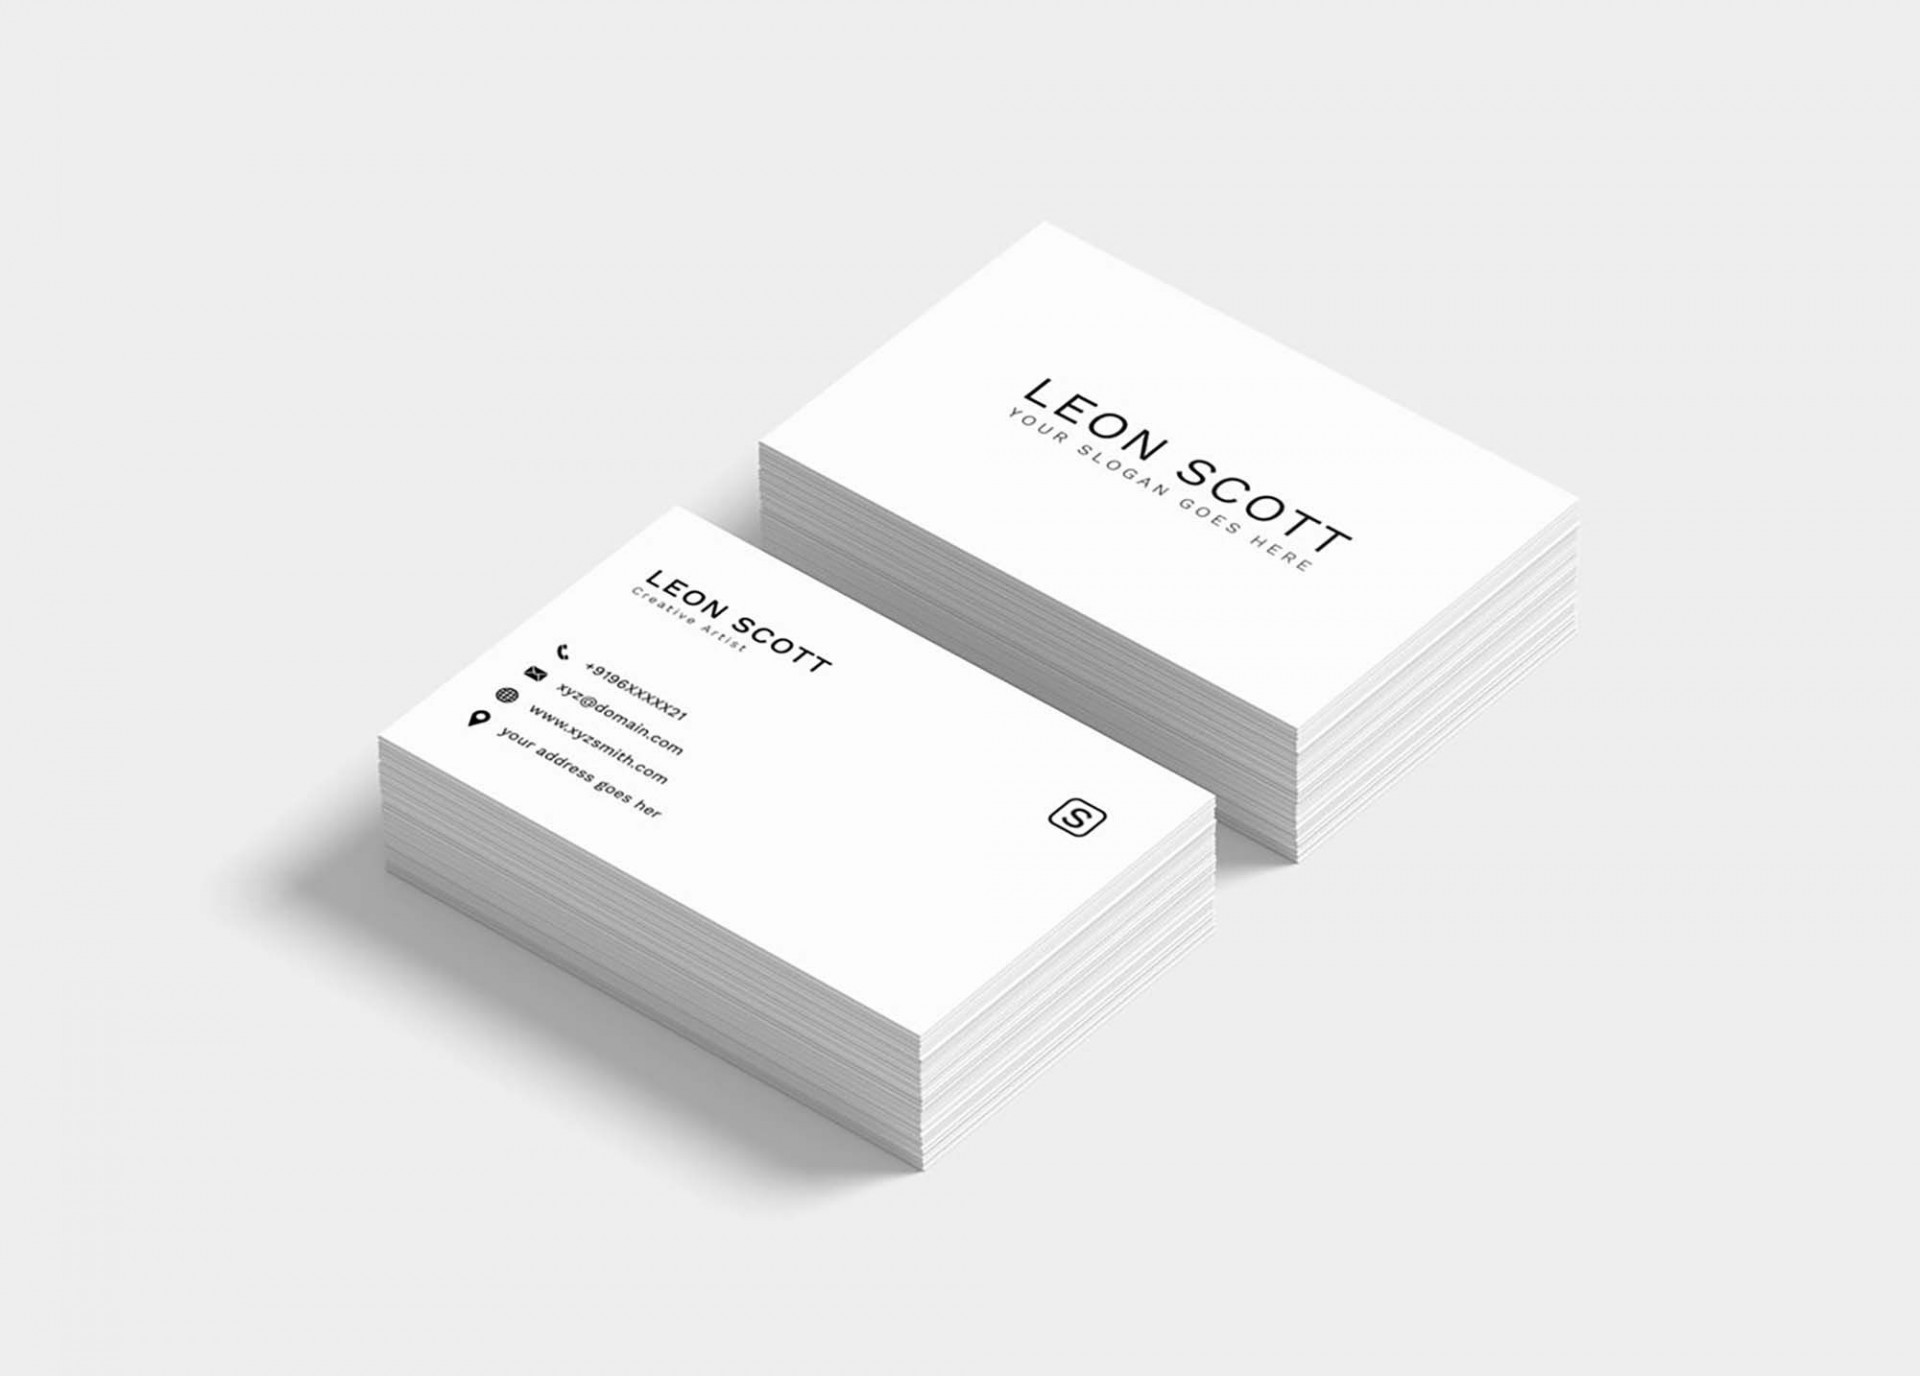 005 Magnificent Free Photoshop Busines Card Template Inspiration  Blank Download Adobe Psd Mockup1920